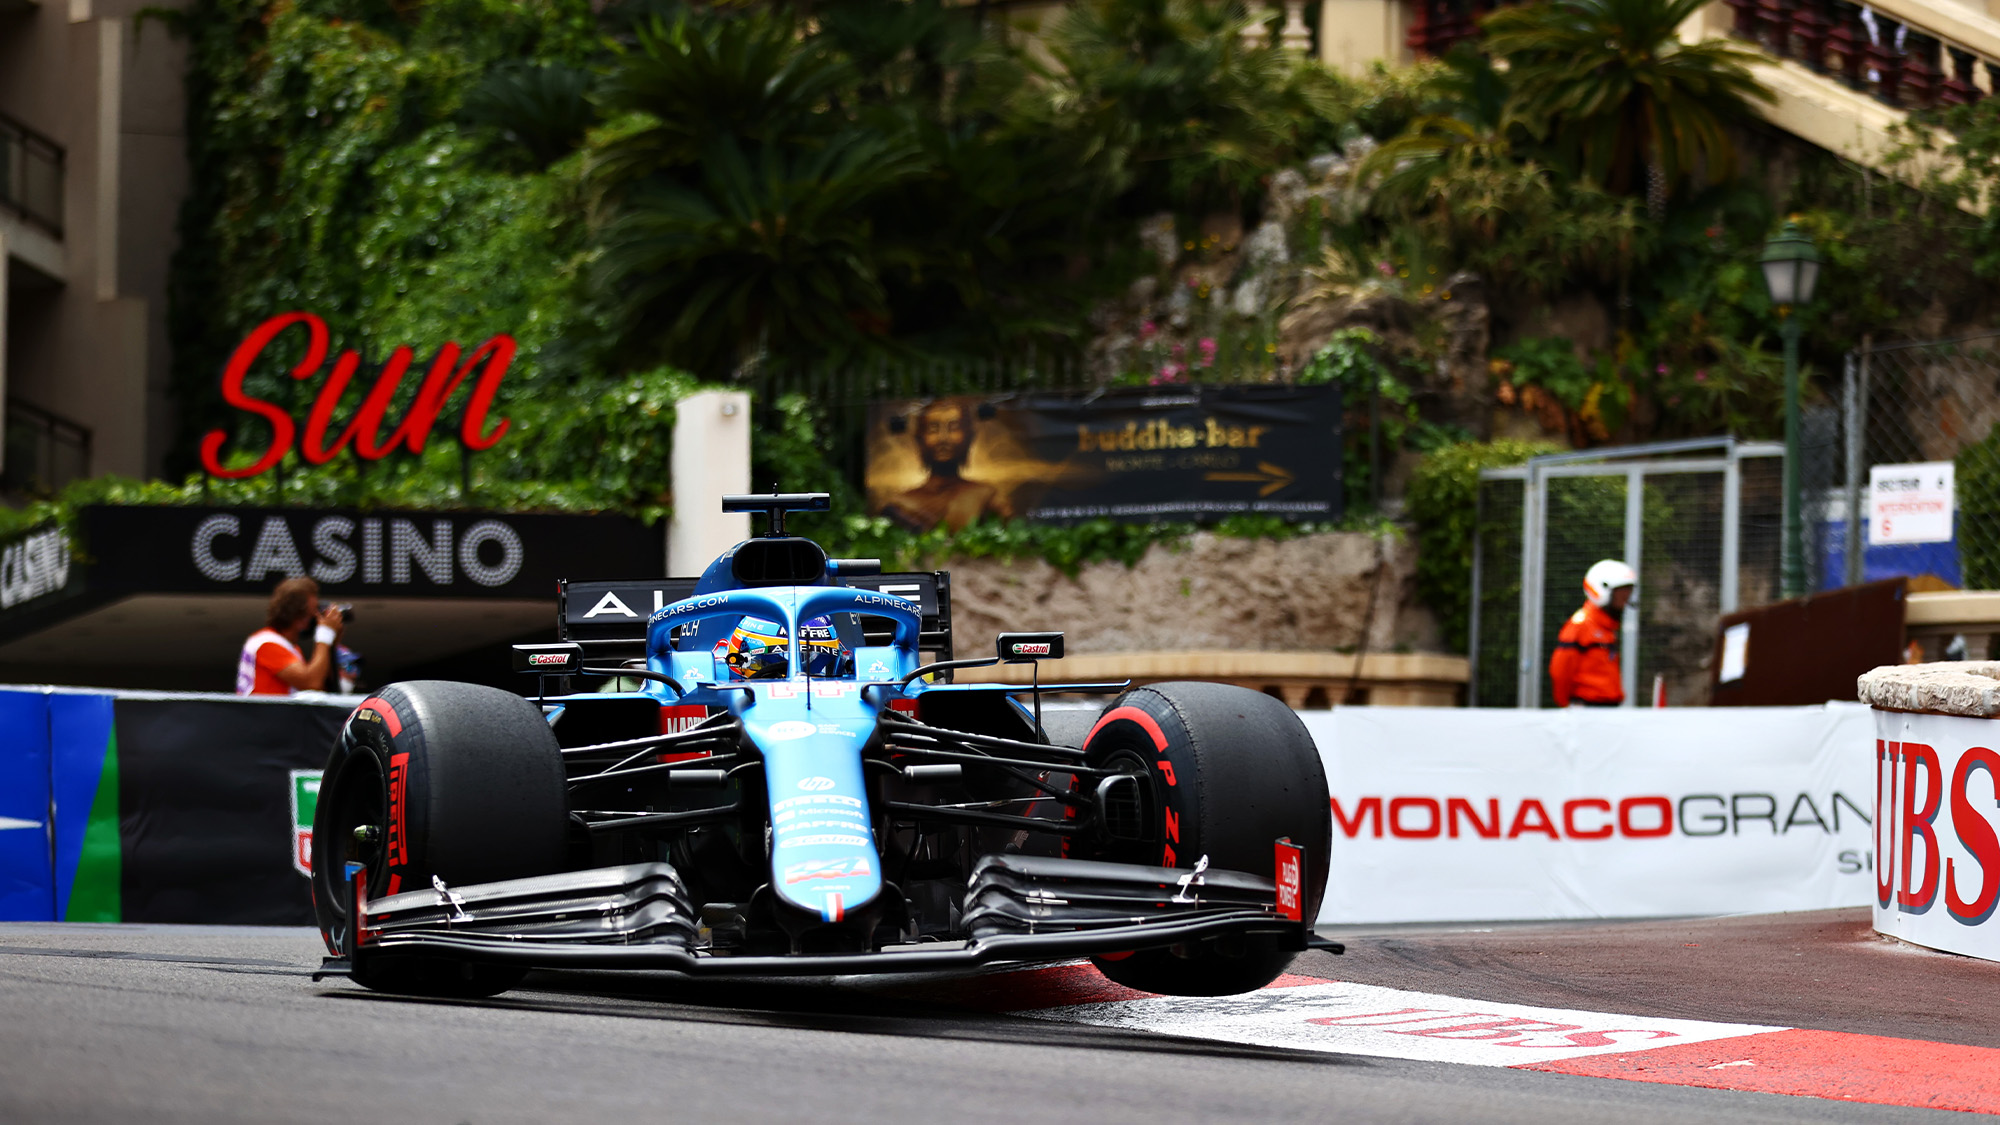 fernando alonso over the kerb of the hairpin in qualifying for the 2021 f1 monaco grand prix